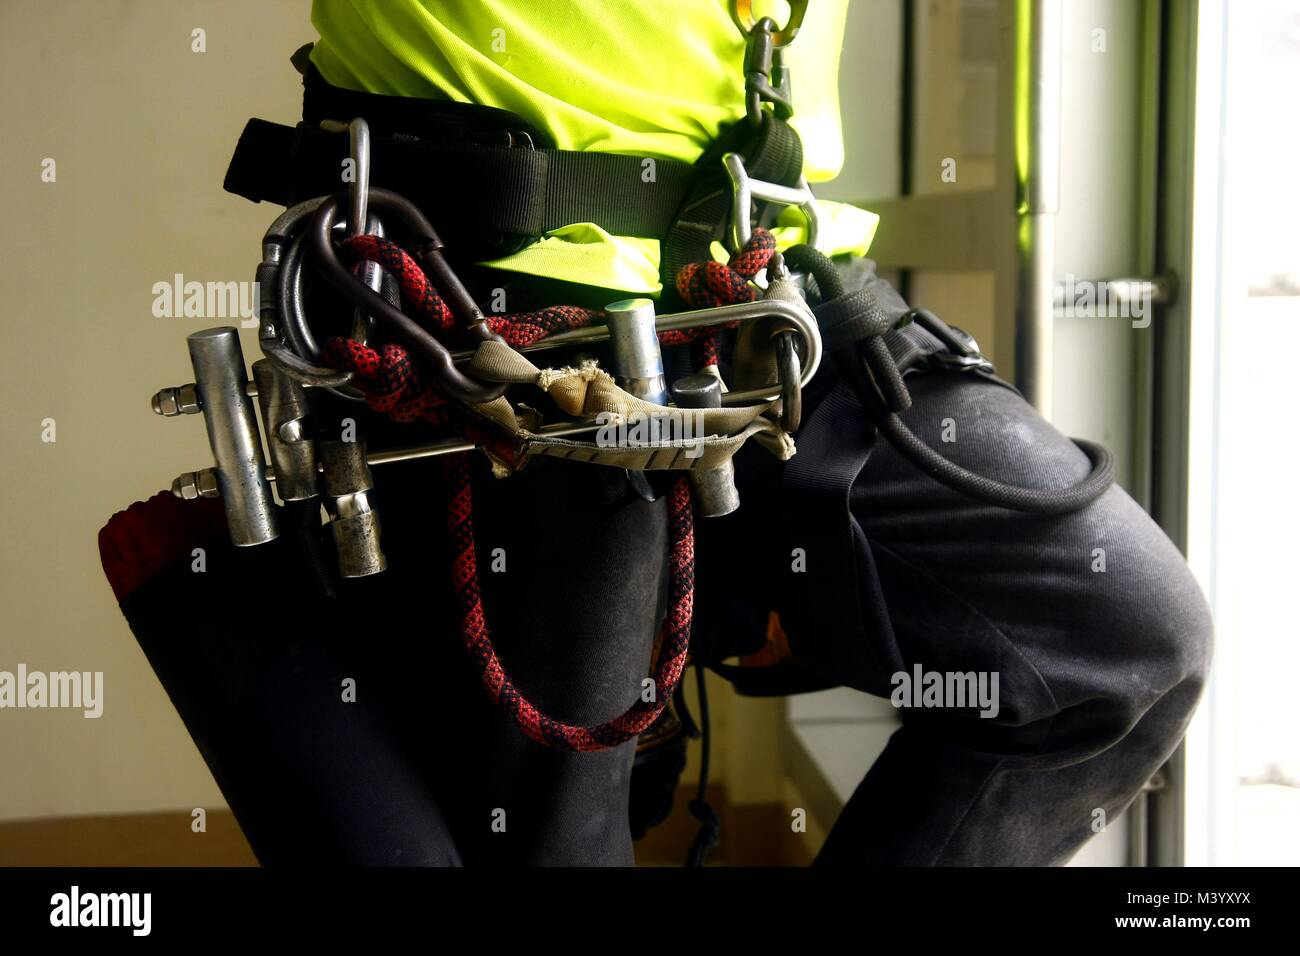 Photo of a climbing gear around the waist of a man - Stock Image